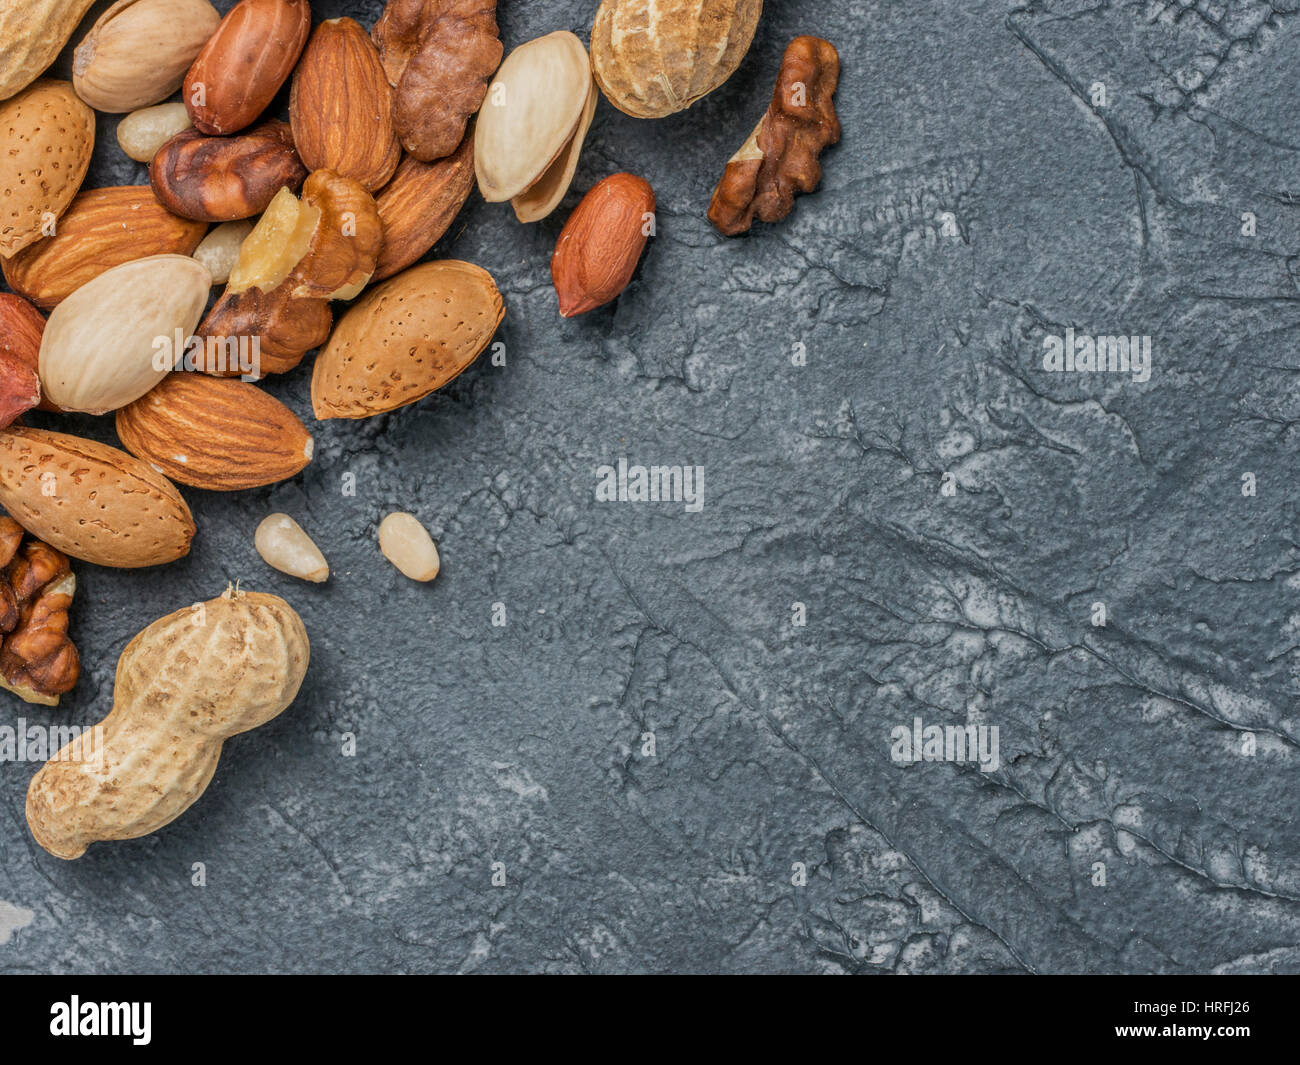 Background of mixed nuts - hazelnuts, walnuts, almonds - on dark concrete background with copy space. Top view or - Stock Image